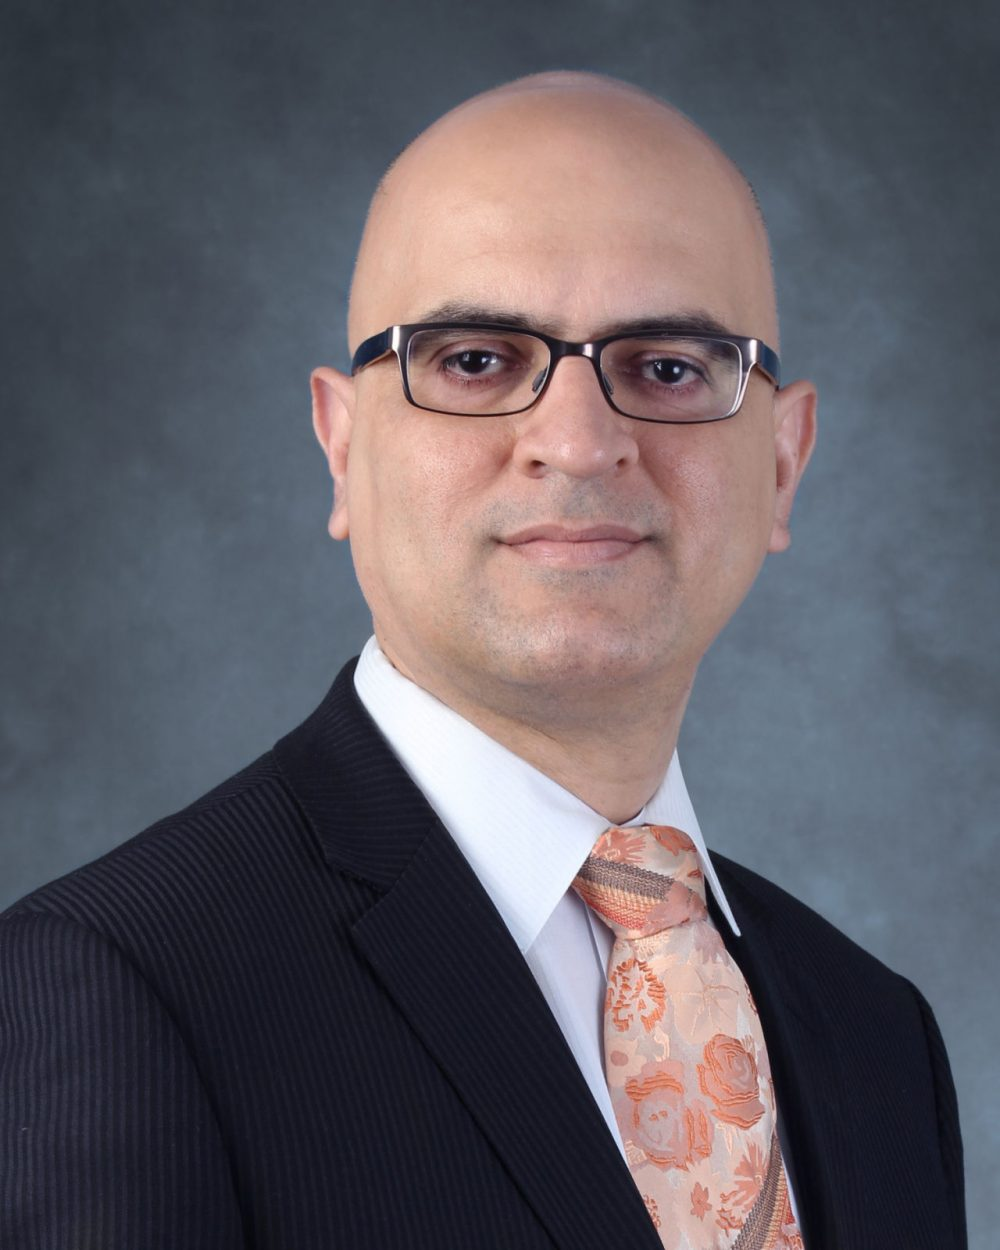 Navjot Singh replaces John Fish as chair of the Greater Boston Chamber of Commerce. (Courtesy Nav Singh)